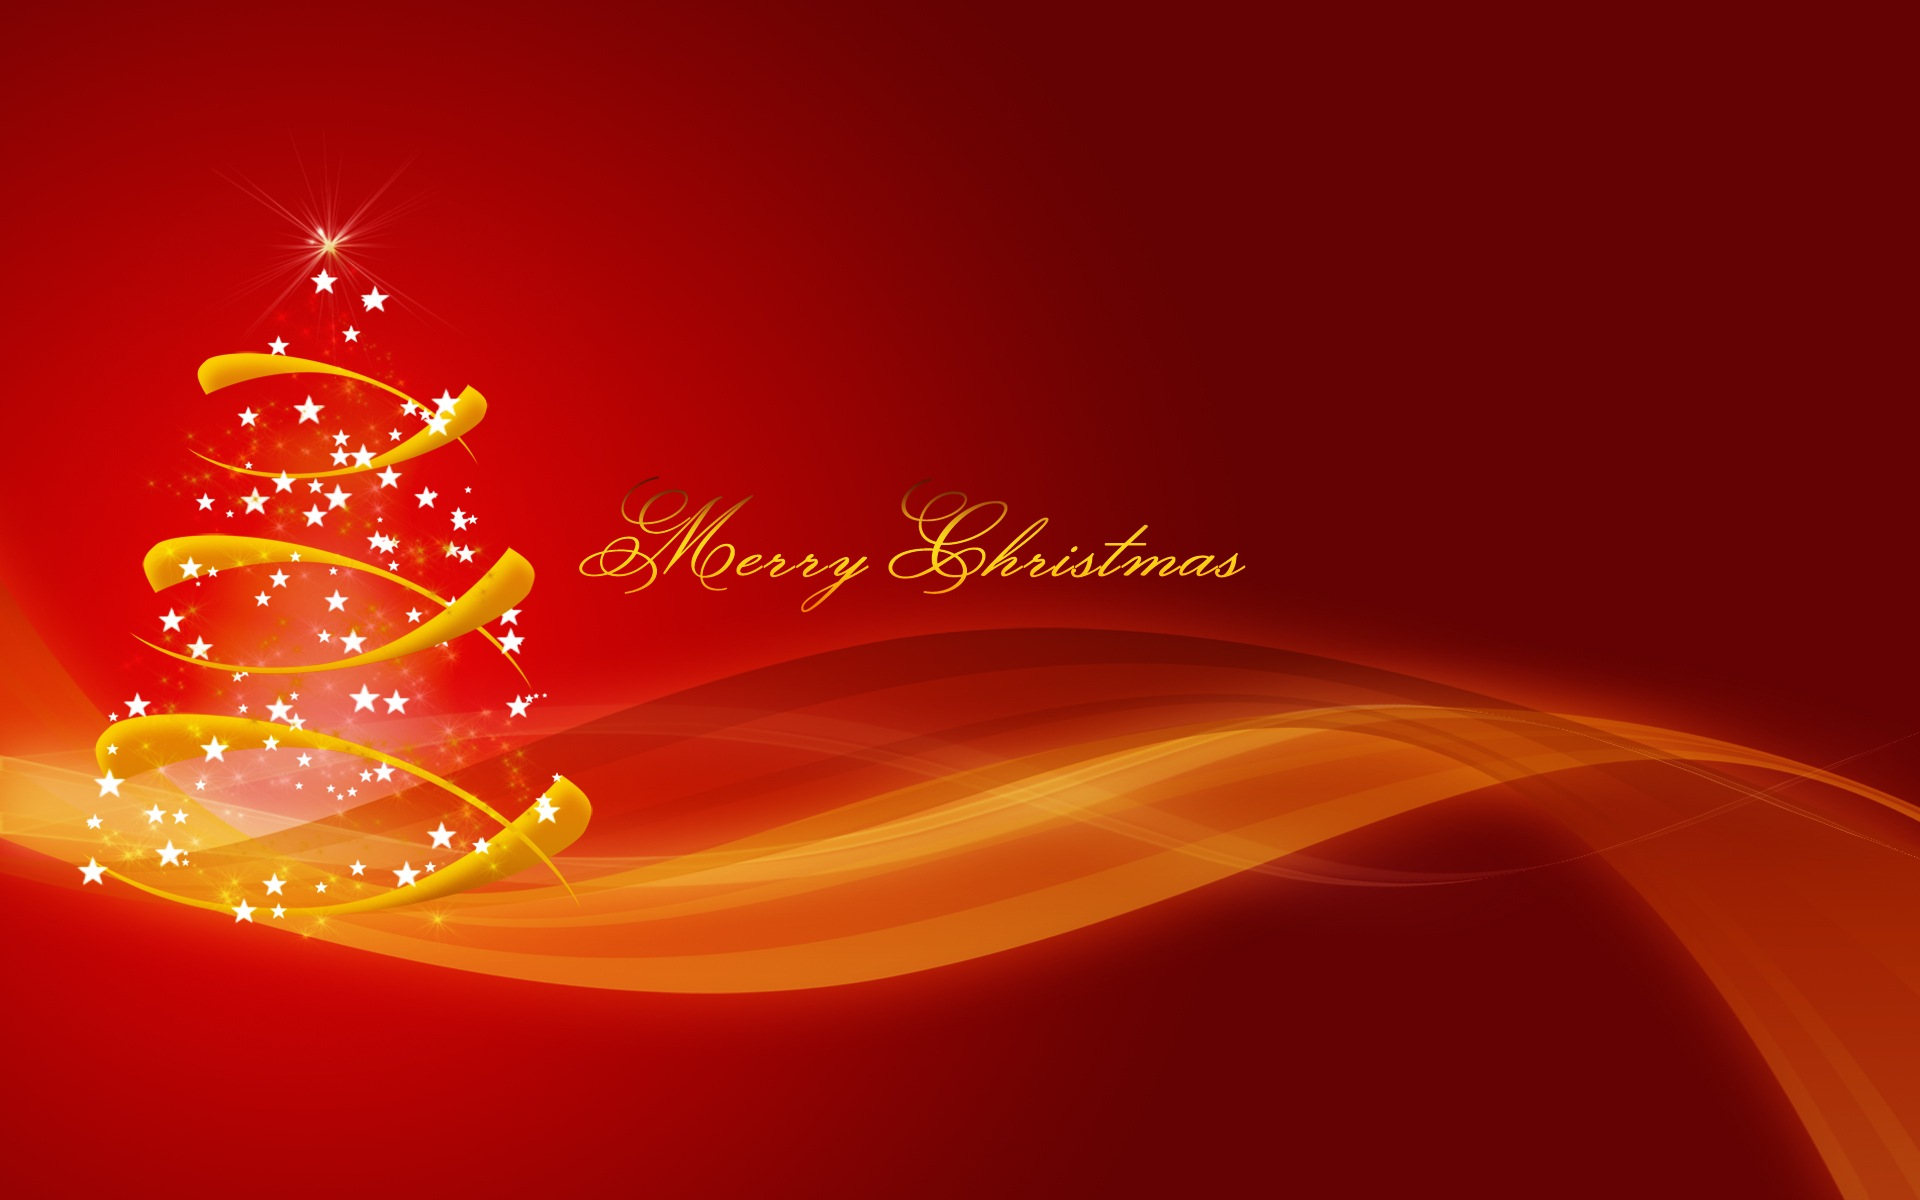 Merry Christmas Wallpapers Pictures Images 1920x1200